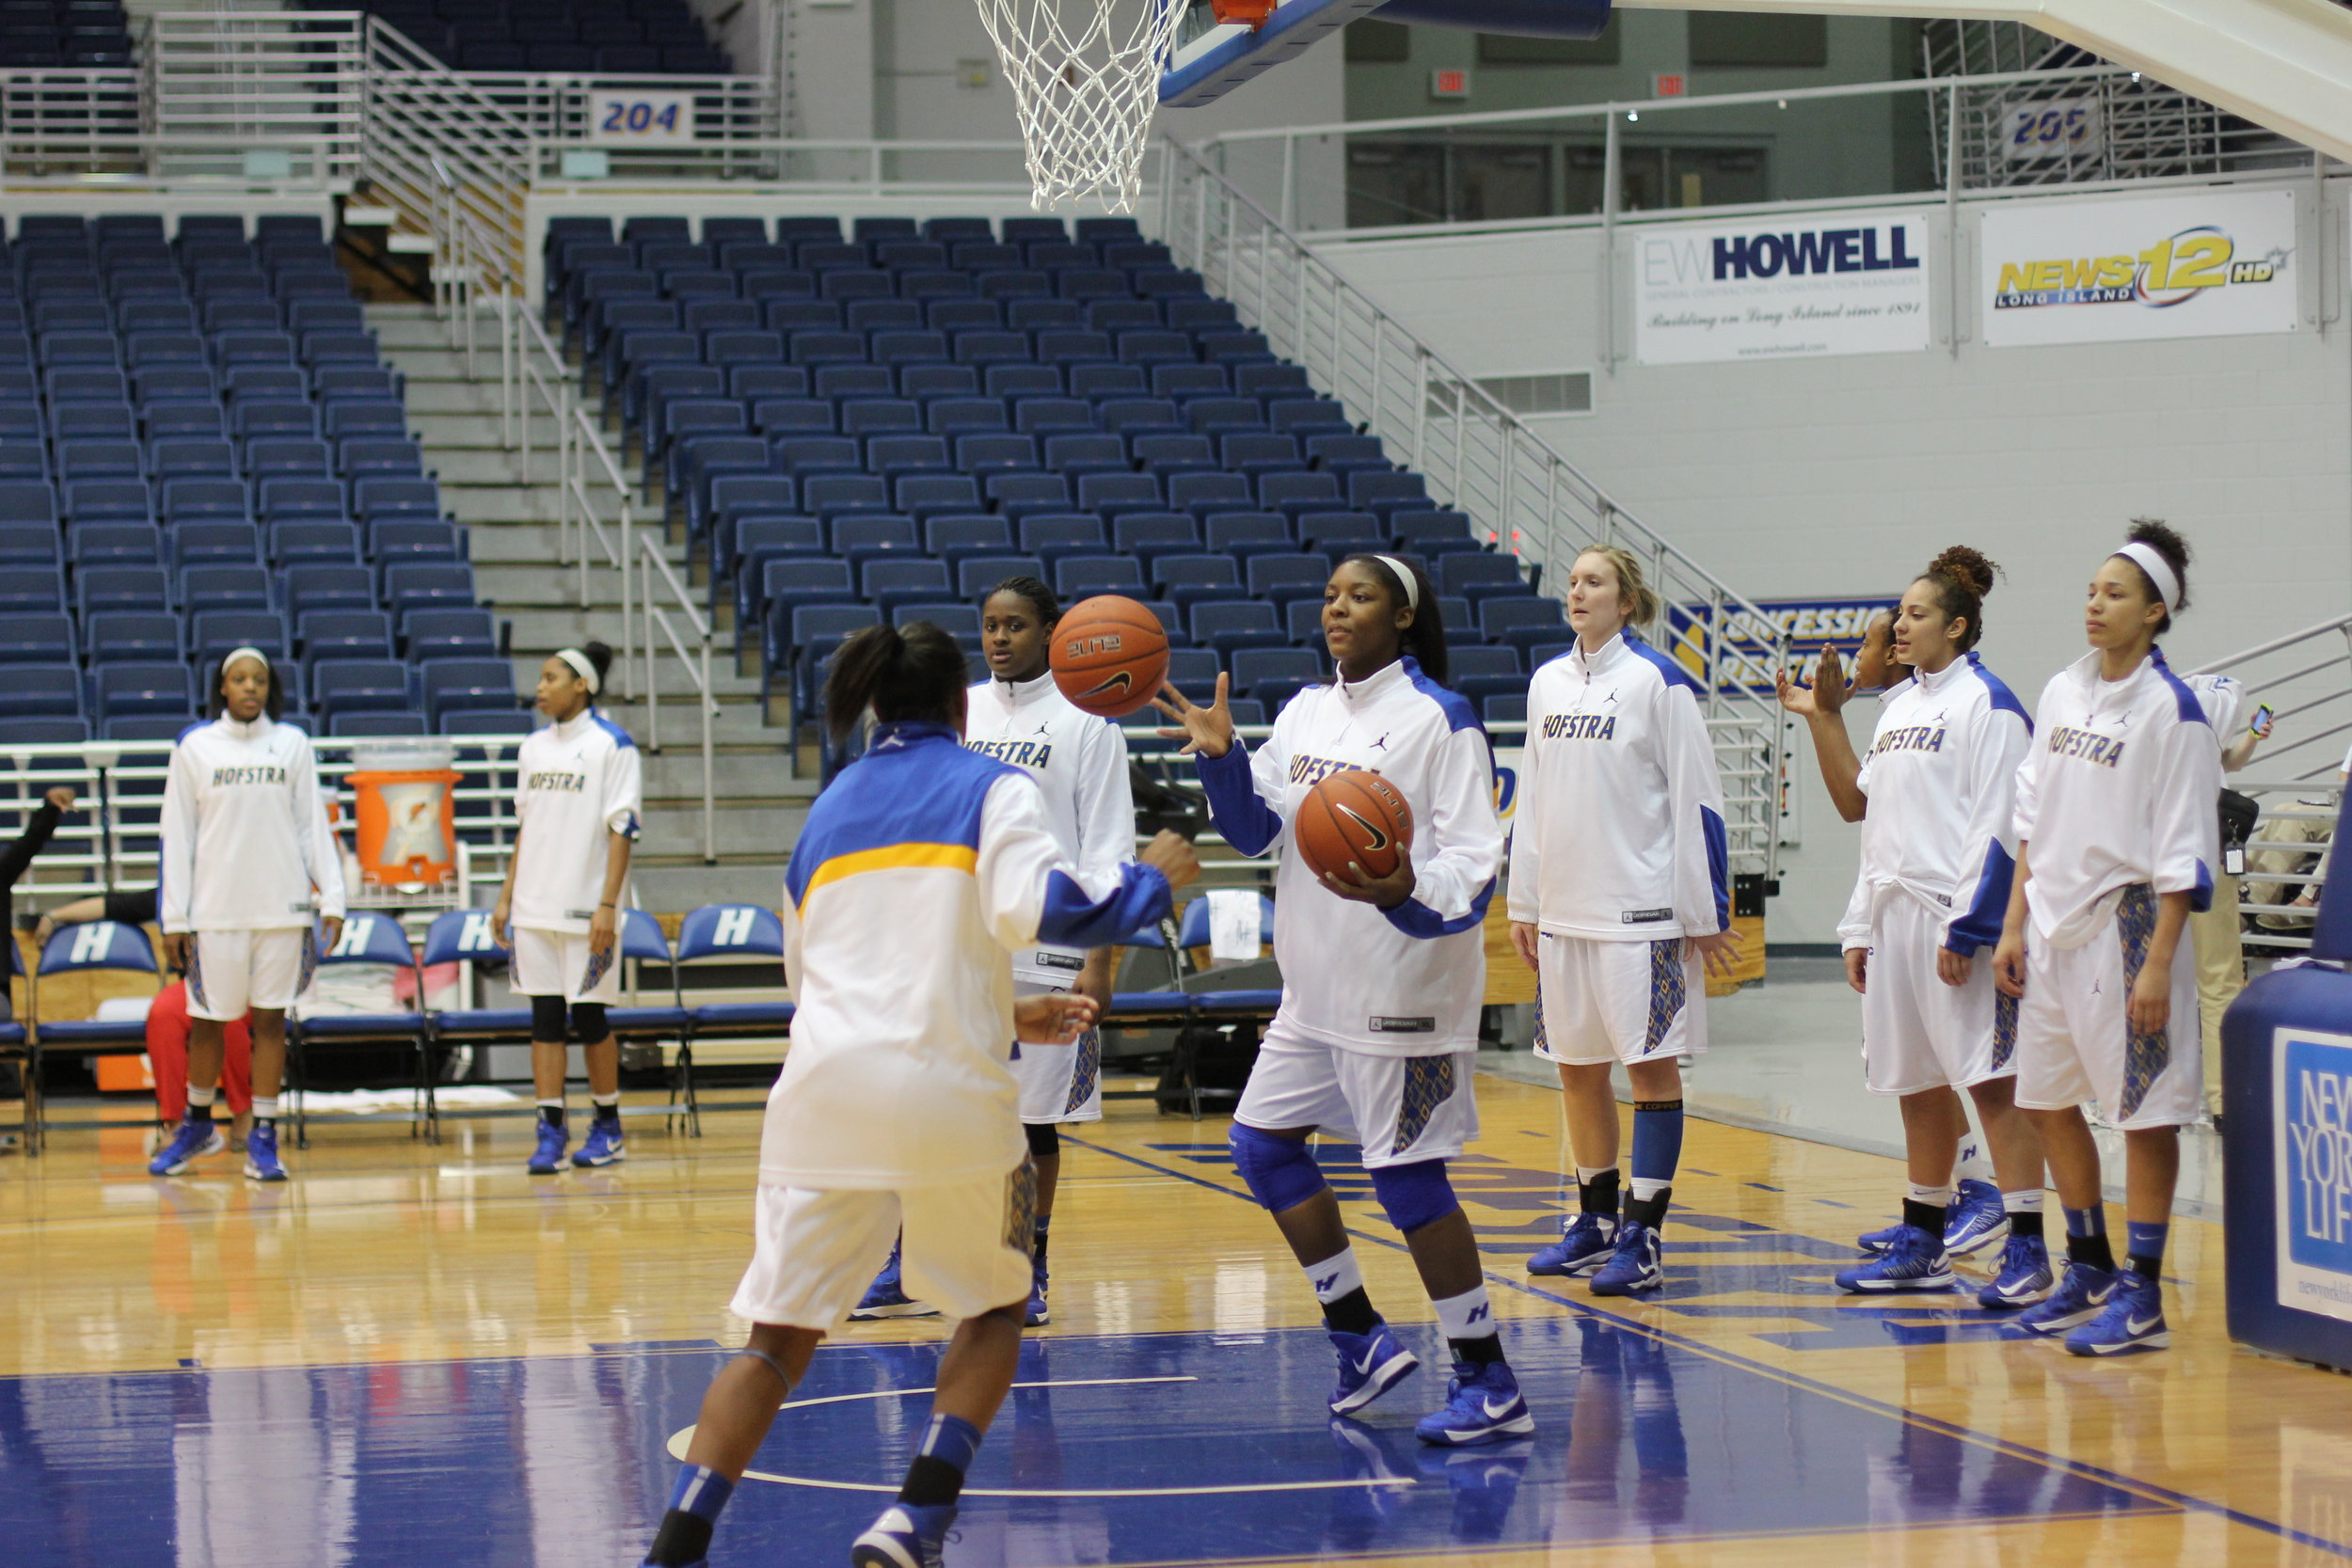 Hofstra women's basketball warming up before its Thursday night game against George Mason.